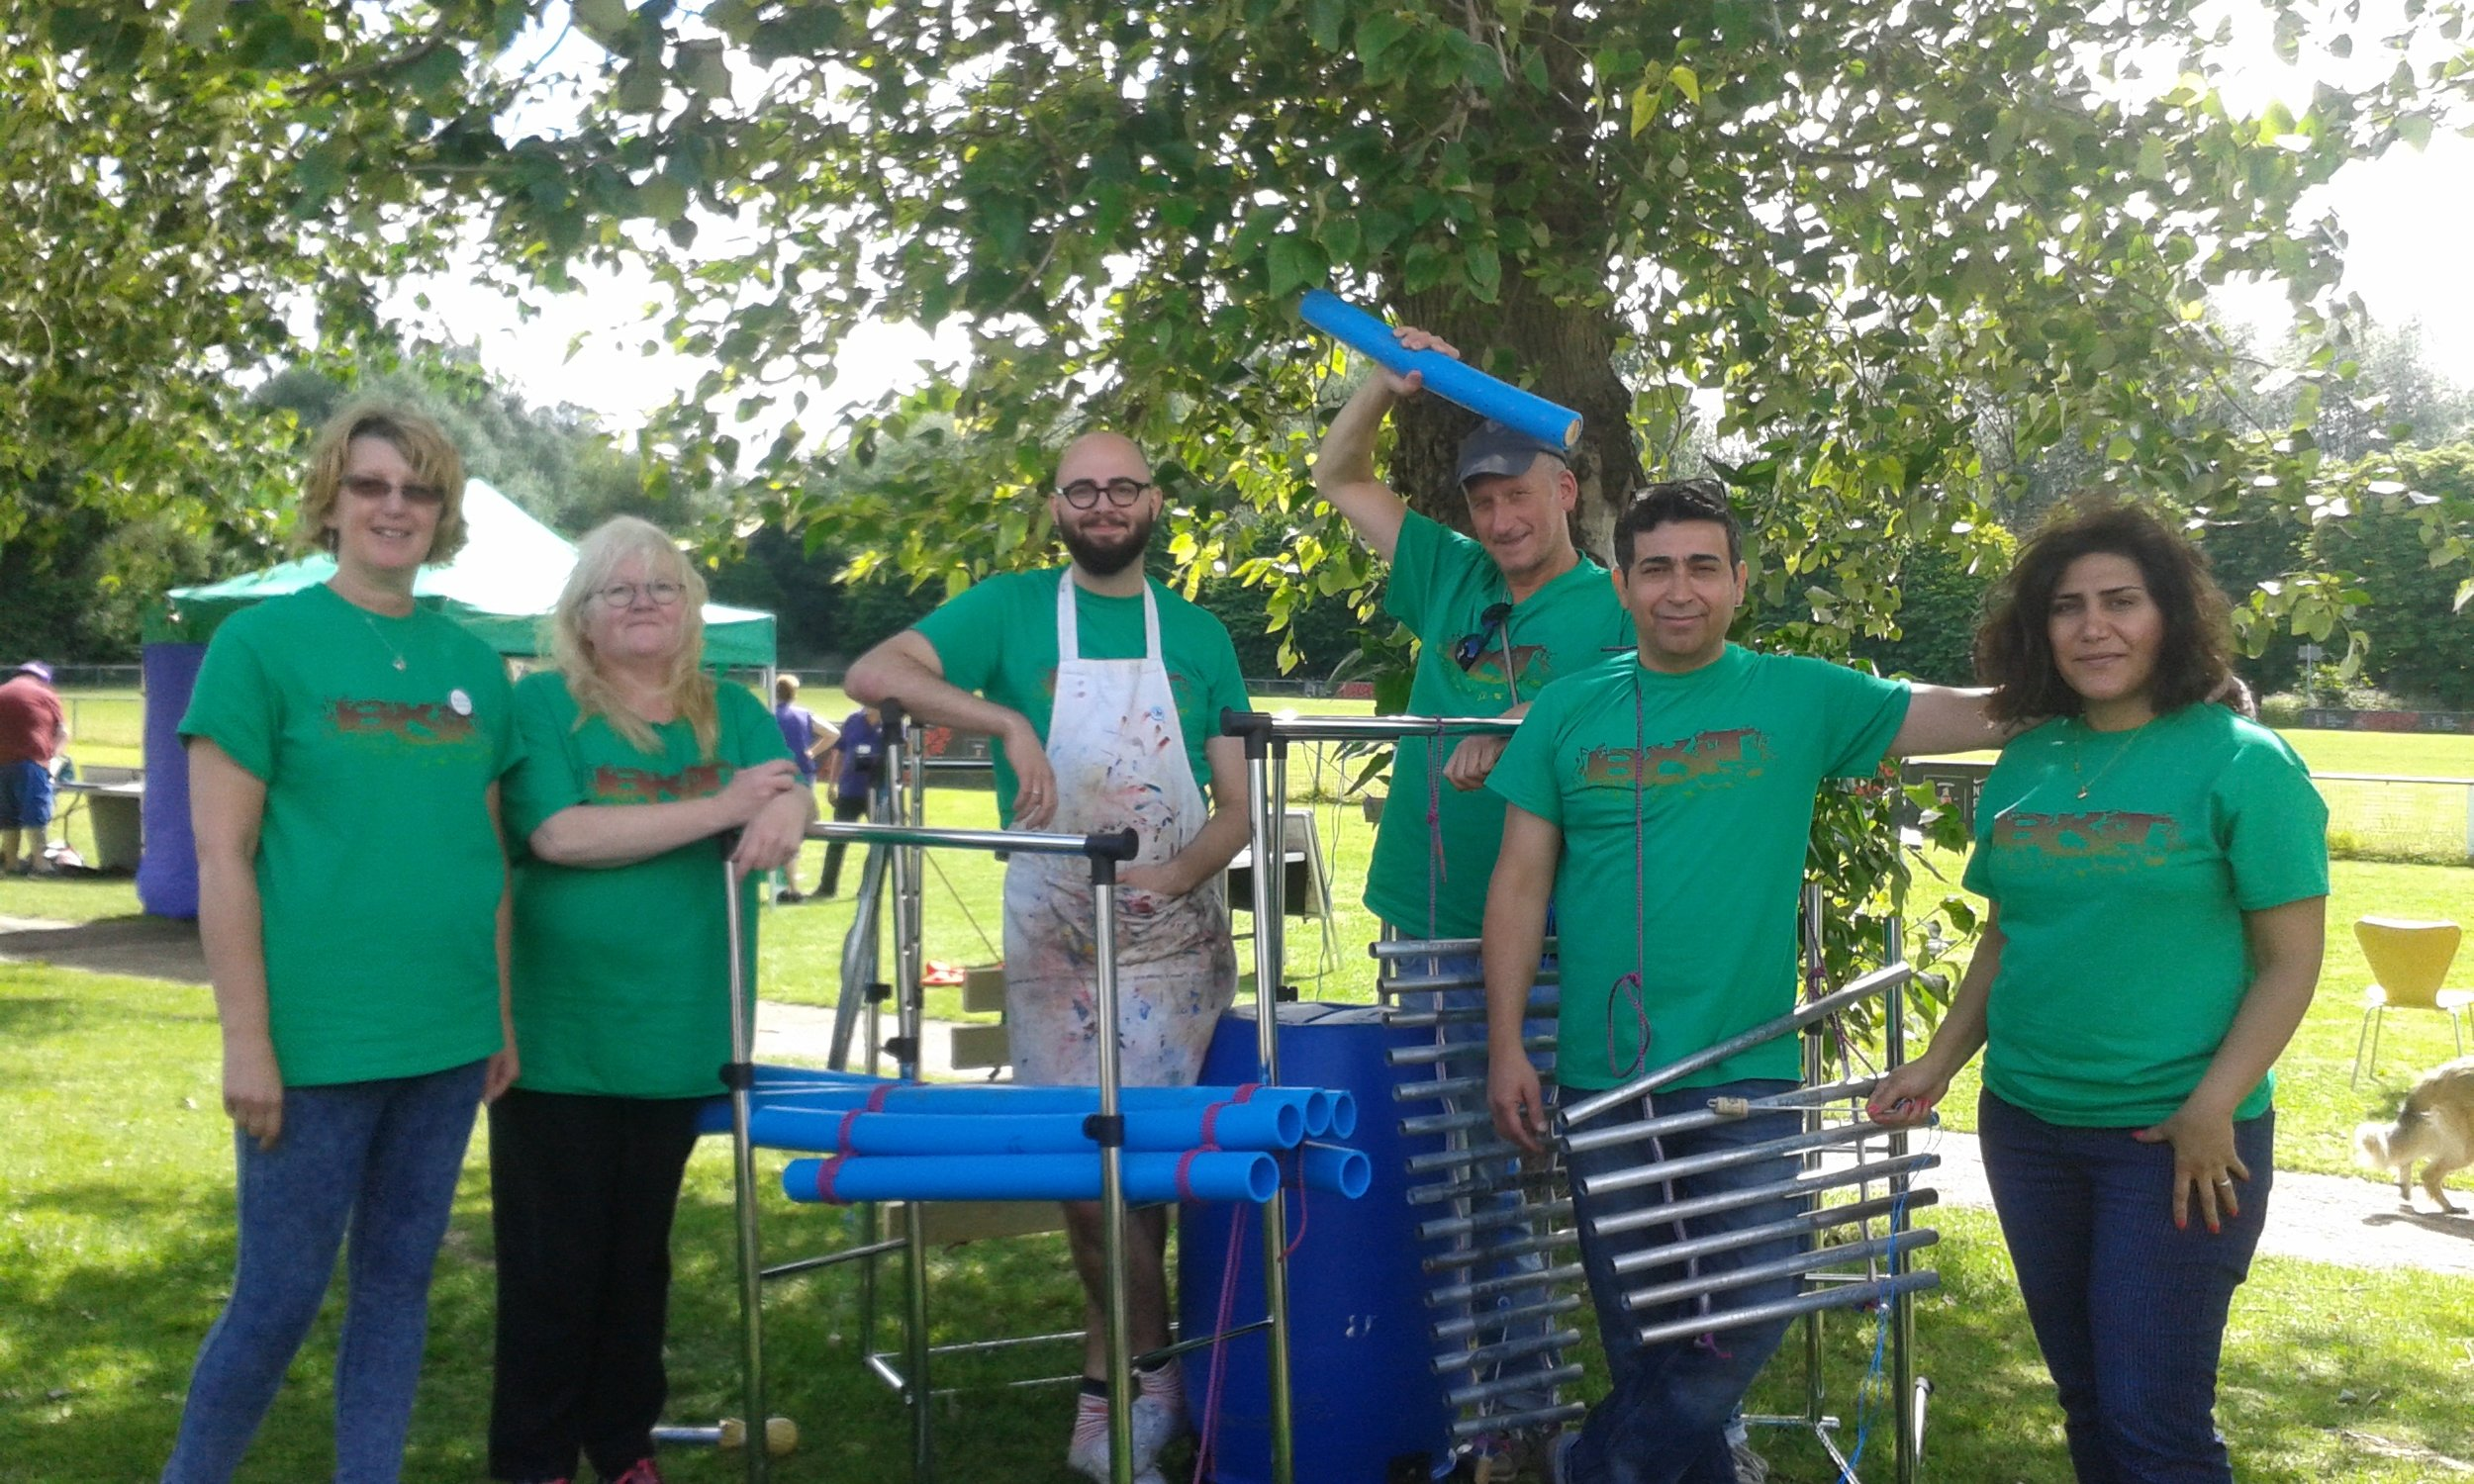 The Bensham & Teams art group with our sound sculpture